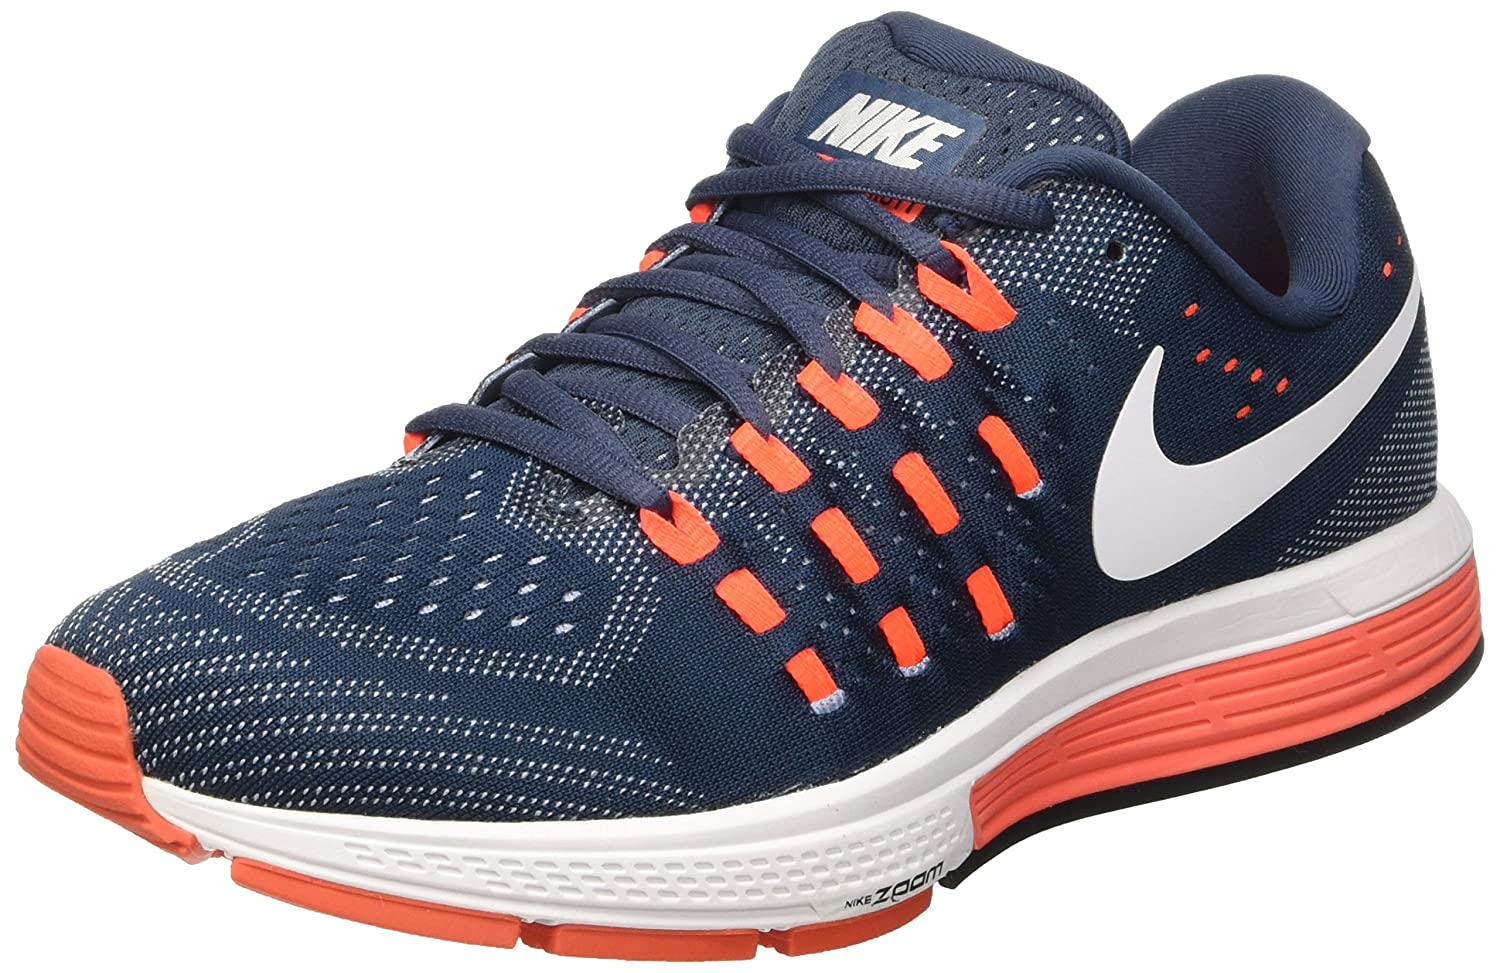 8445f4a16d141 Amazon.com  Nike Men s Air Zoom Vomero 11 Running Shoes  Shoes